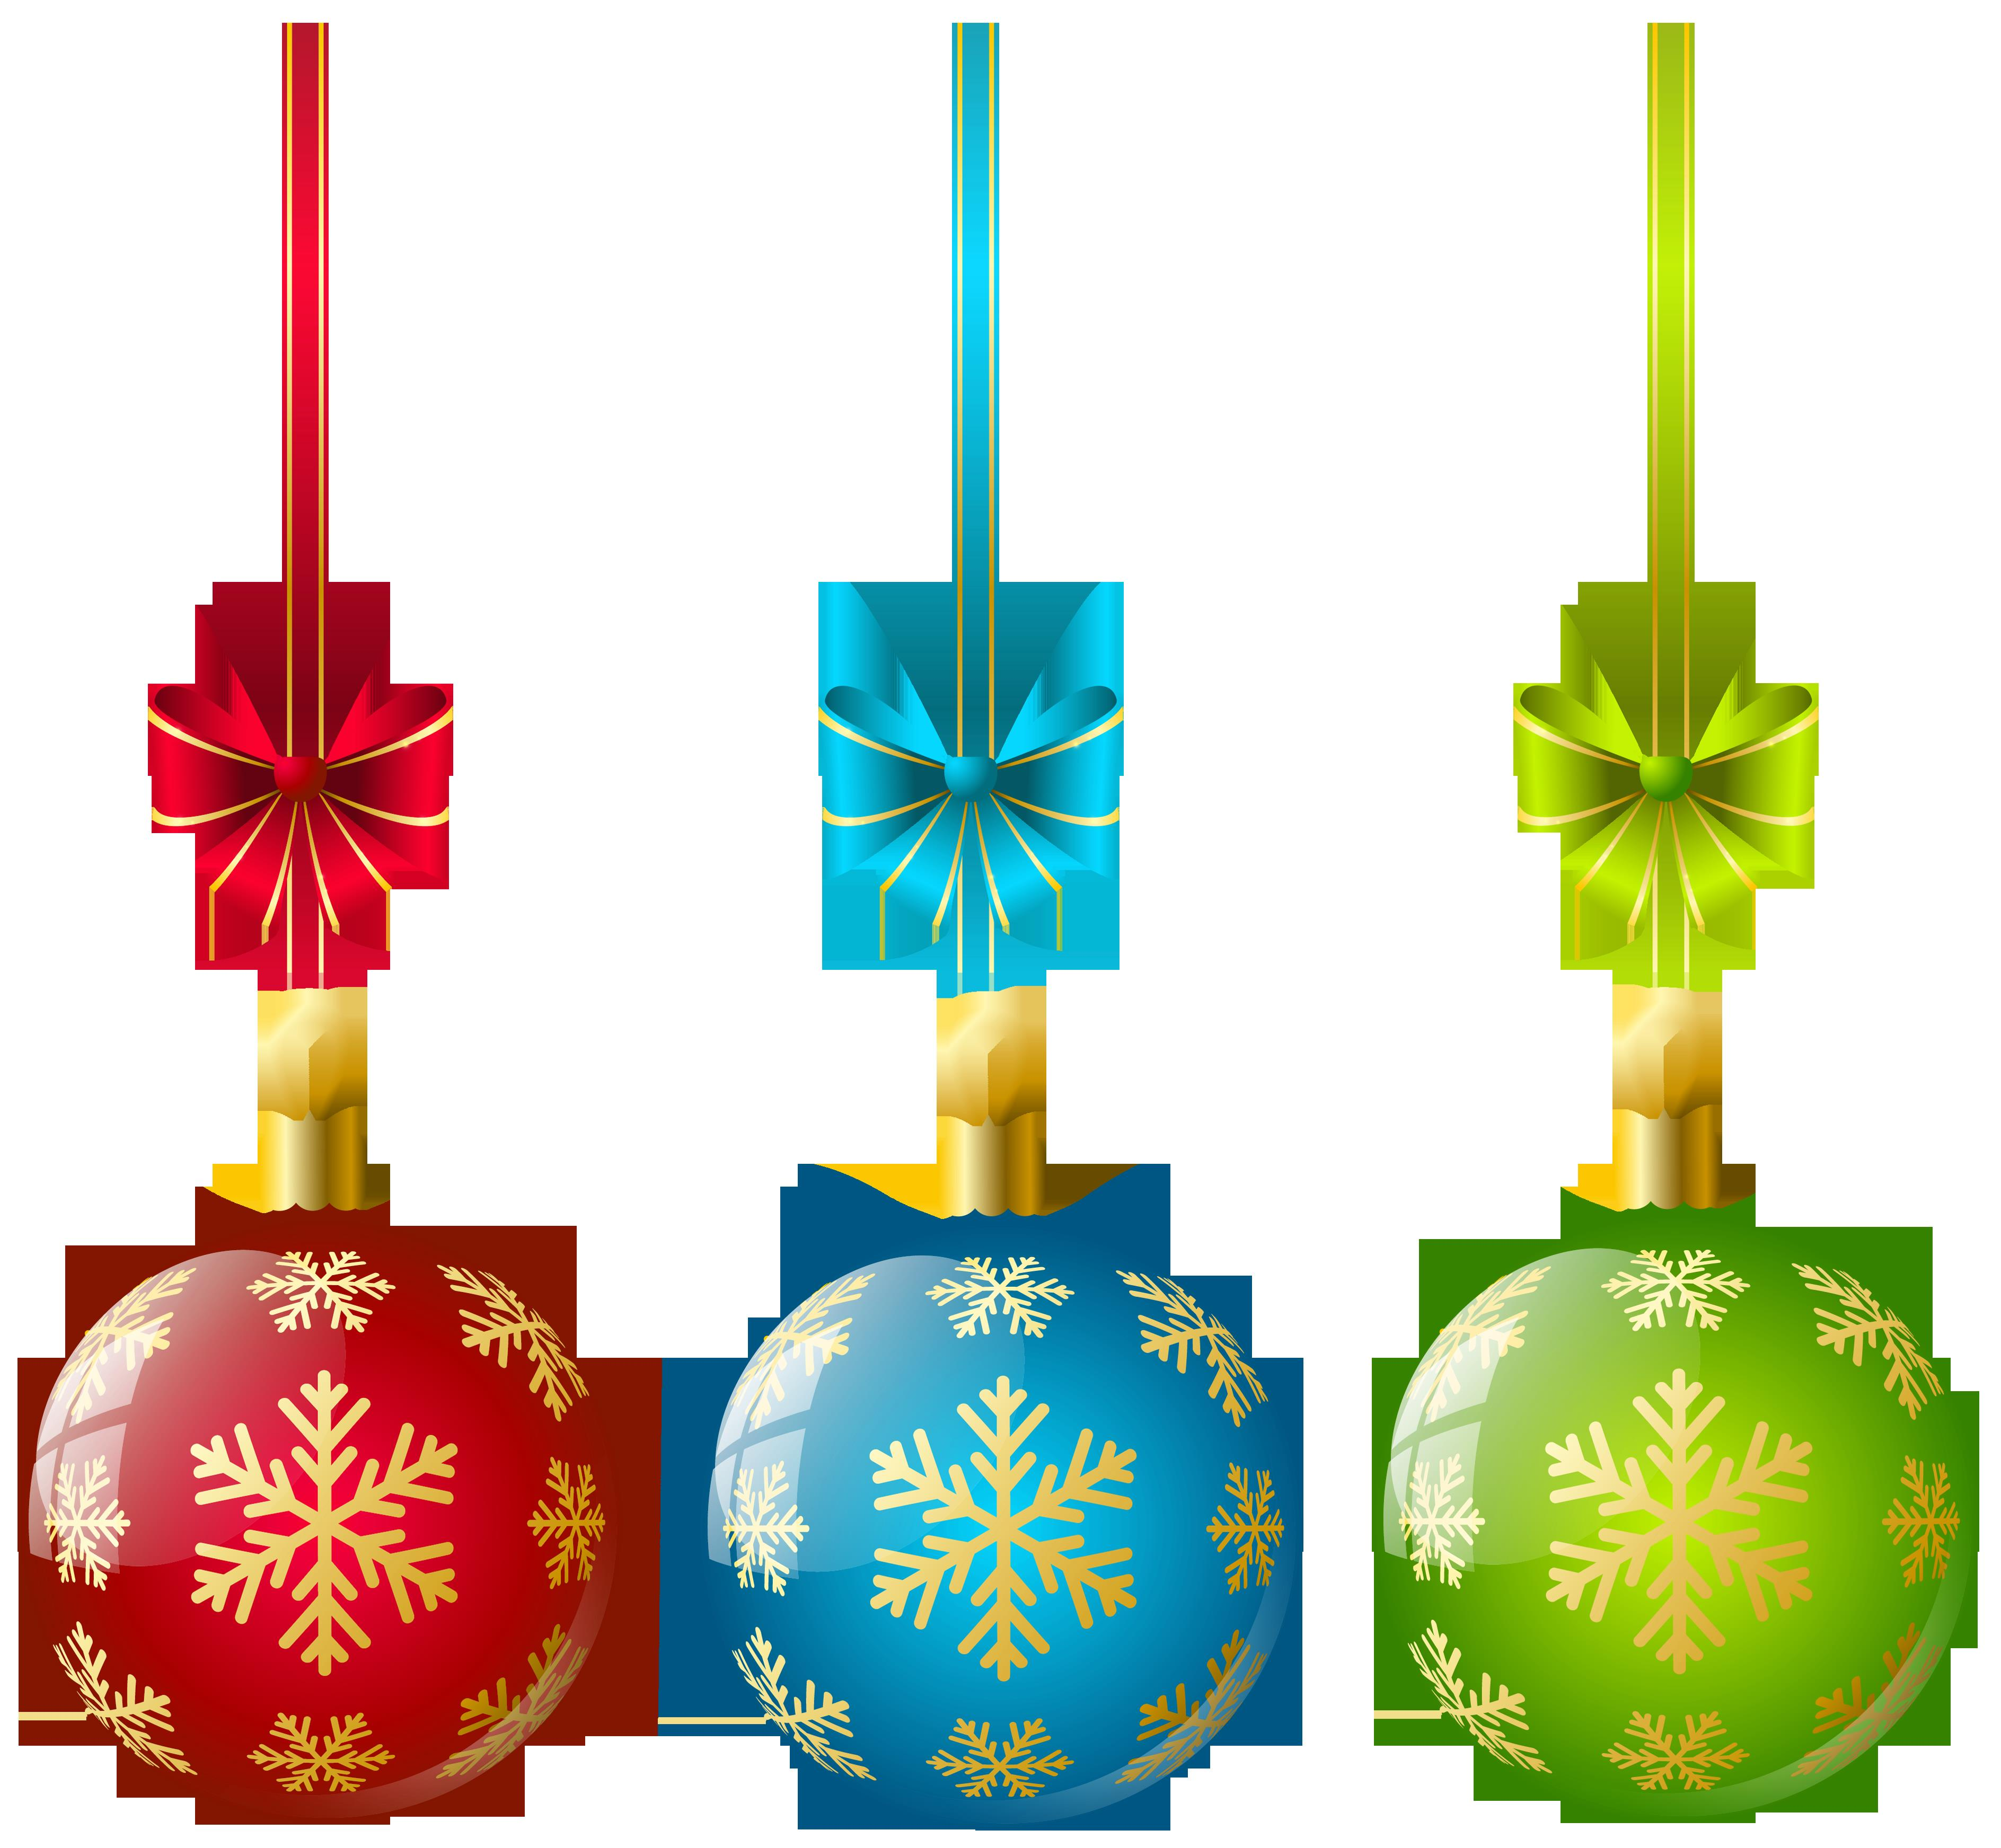 3775x3487 Christmas Ornaments Clip Art Free Images Halloween Amp Holidays Wizard